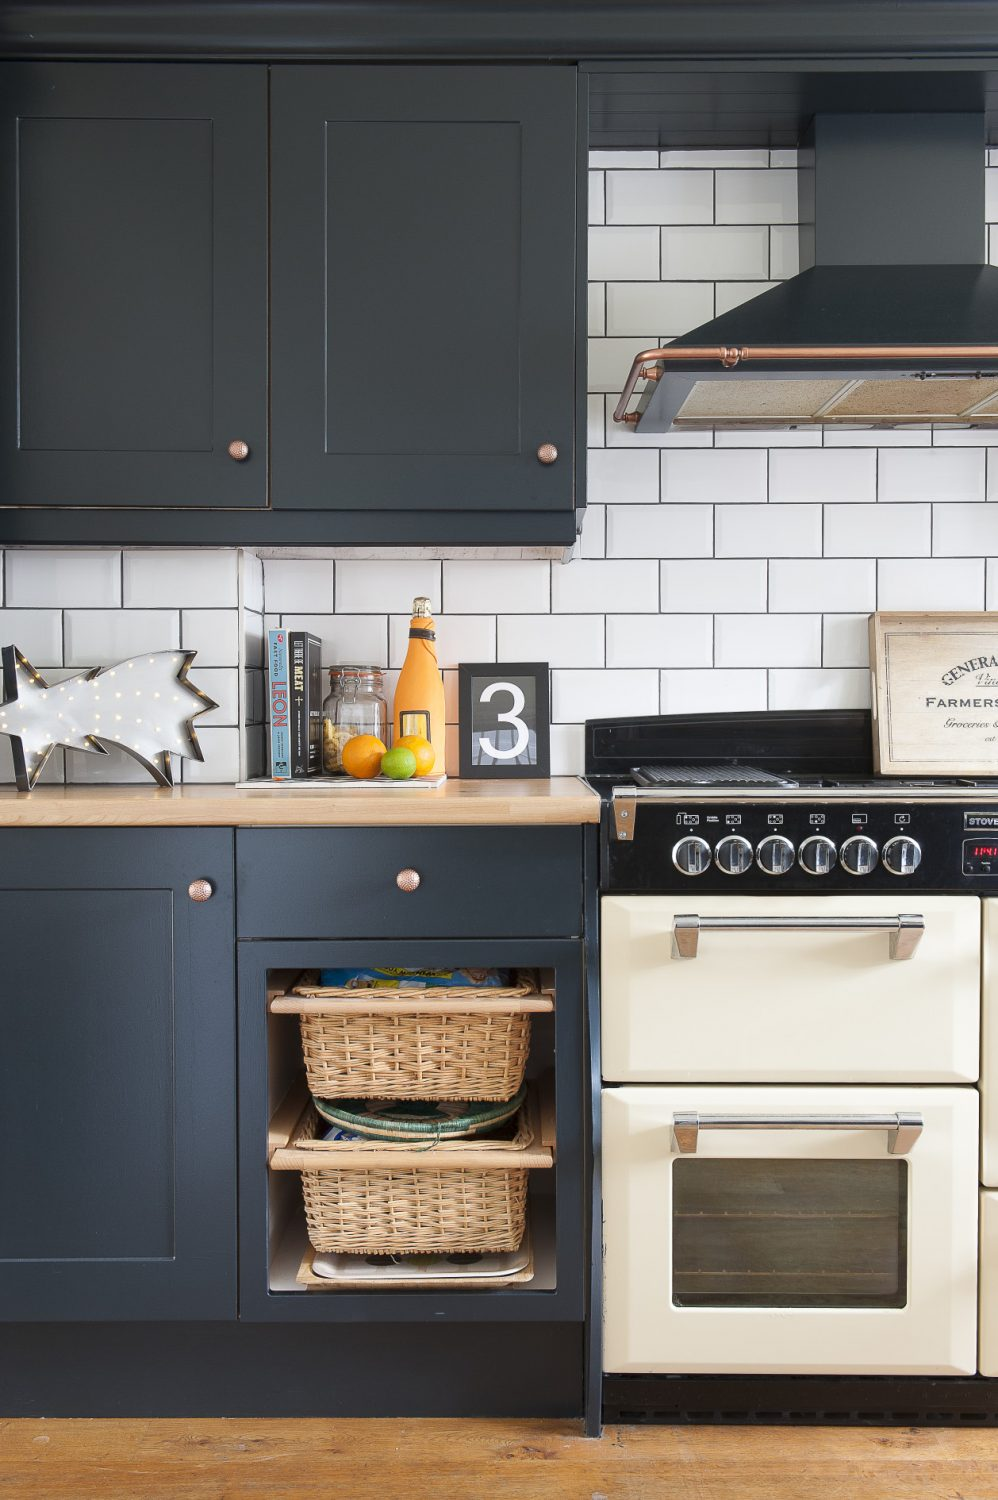 The kitchen units are painted in Farrow & Ball Railings. Lucinda took the knobs and the cooker hood details off and sprayed them copper